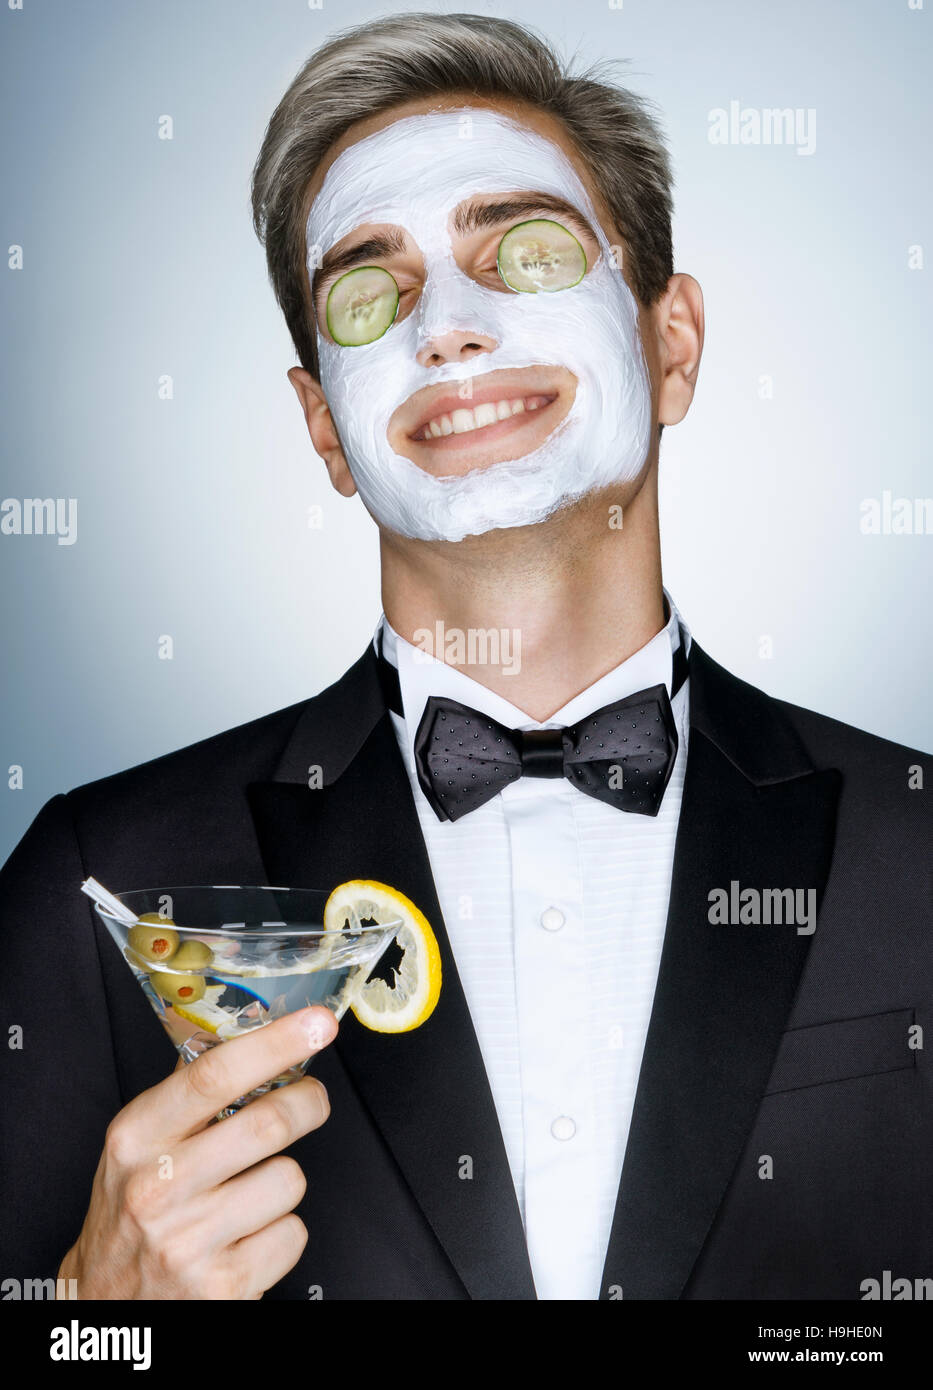 Good skin care is very important. Happy gentleman receiving spa facial treatment. Photo of Handsome man with a facial - Stock Image